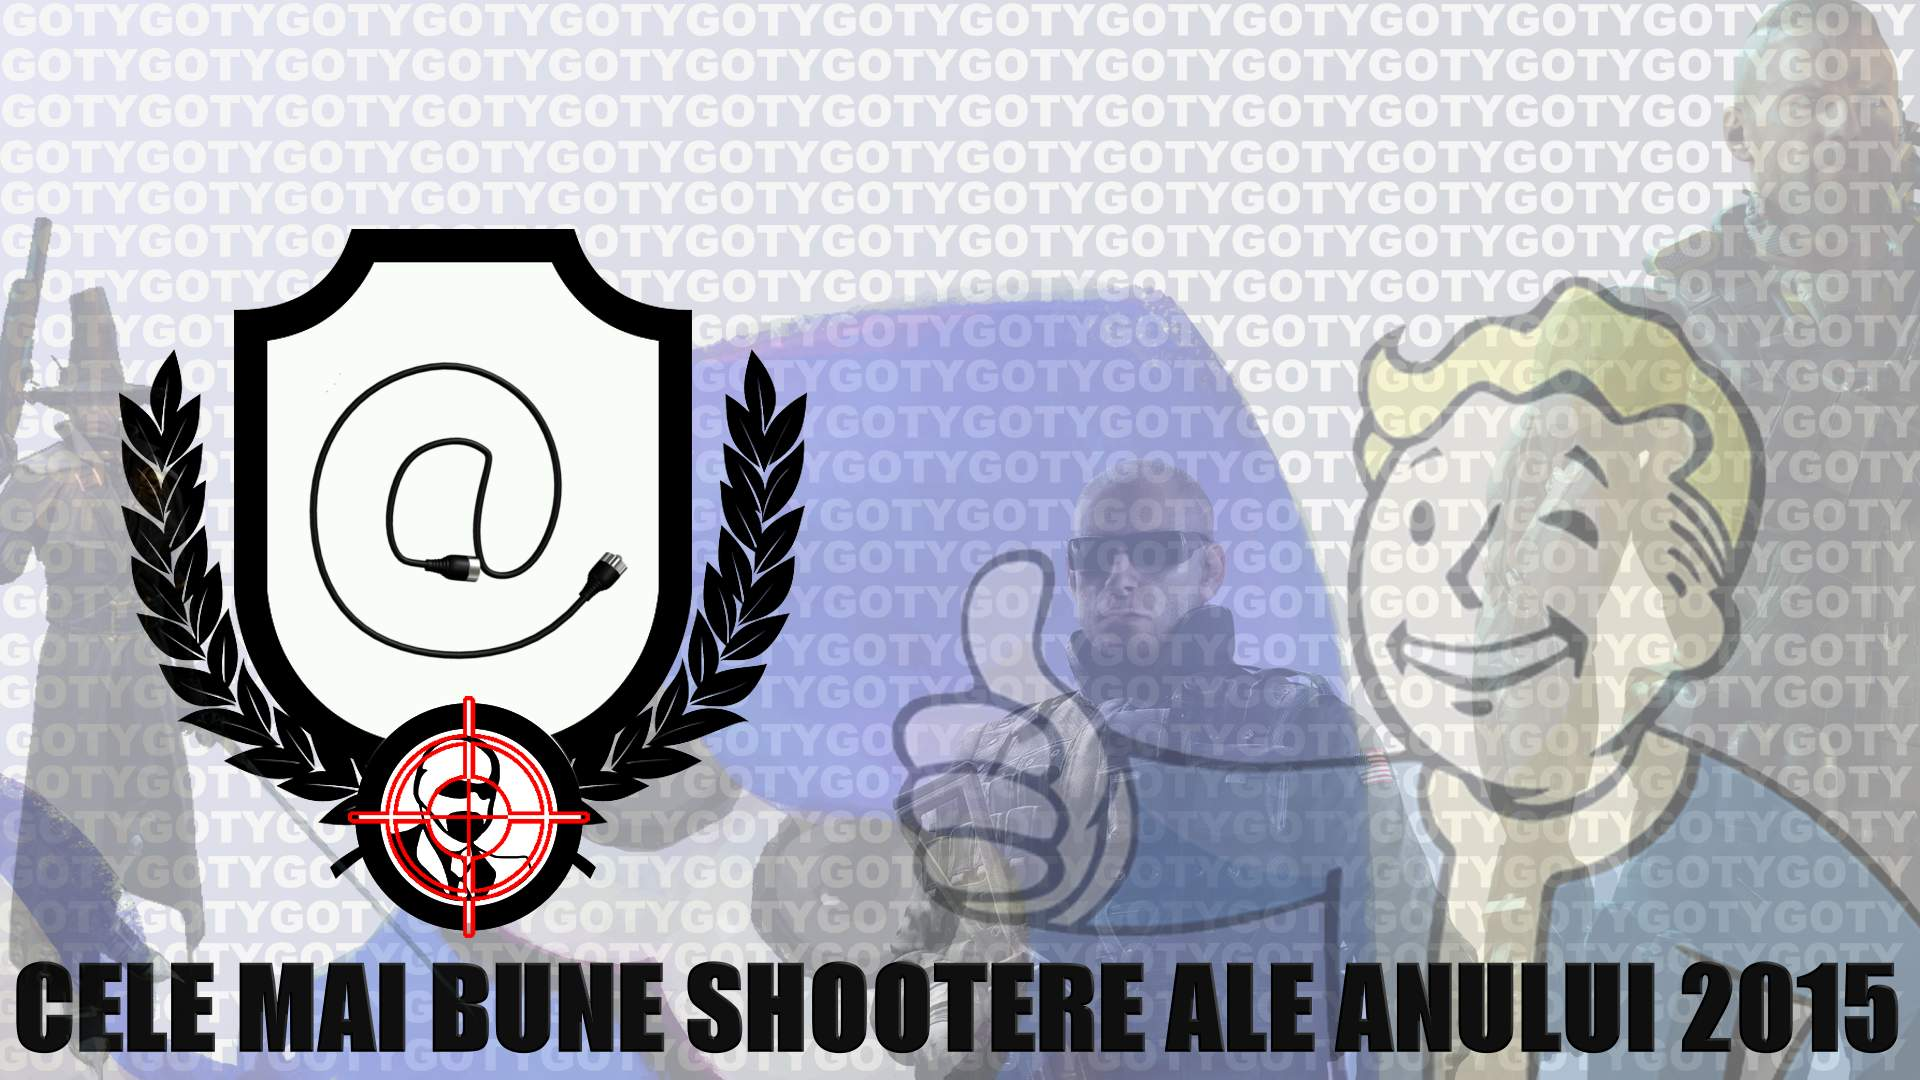 Photo of Top 5 cele mai bune shootere ale anului 2015